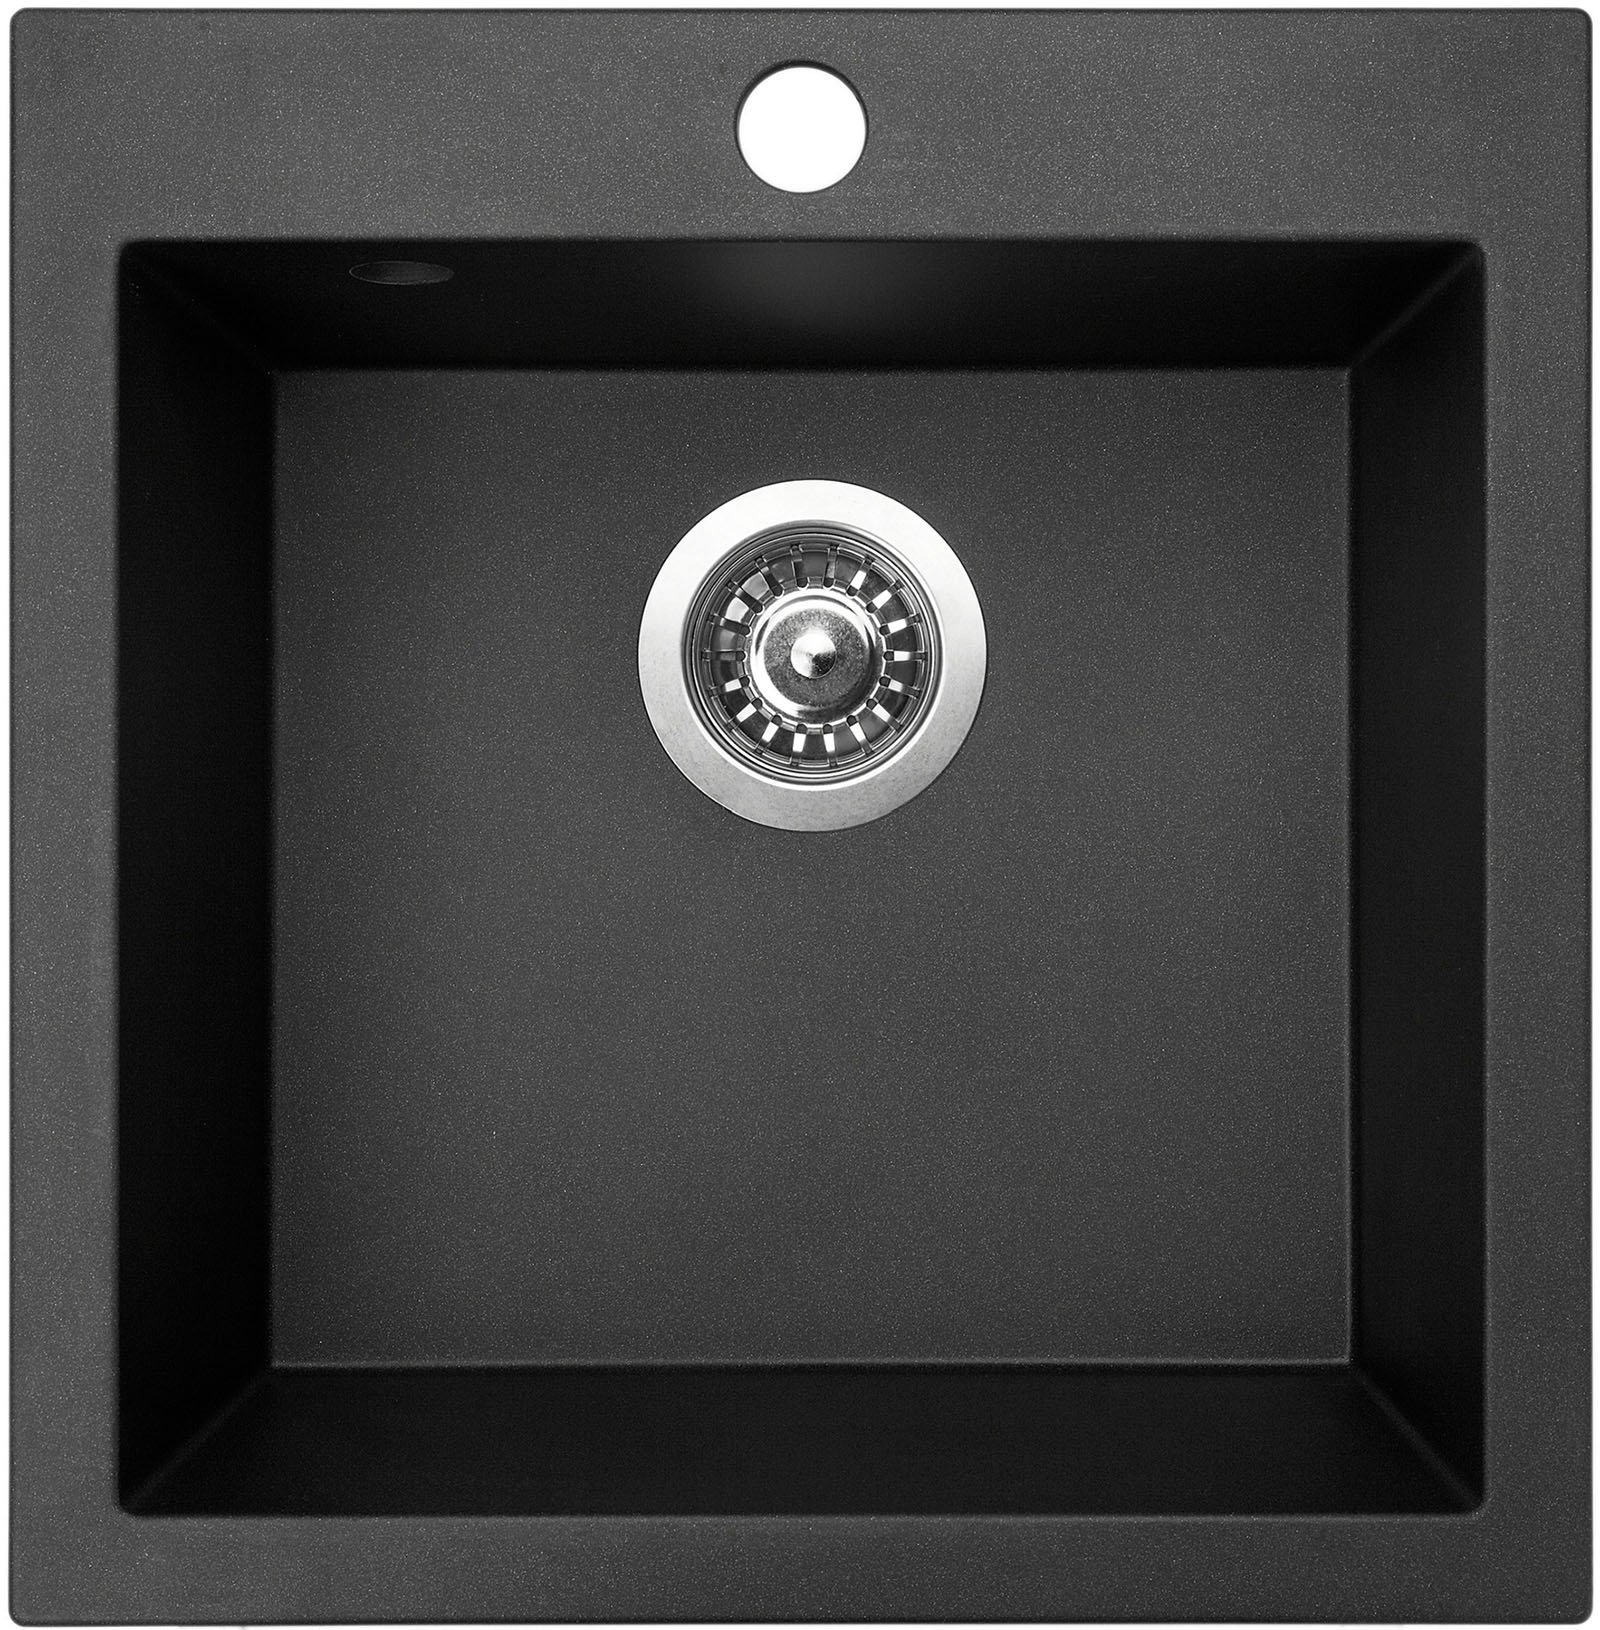 Sinks VIVA 455 Metalblack